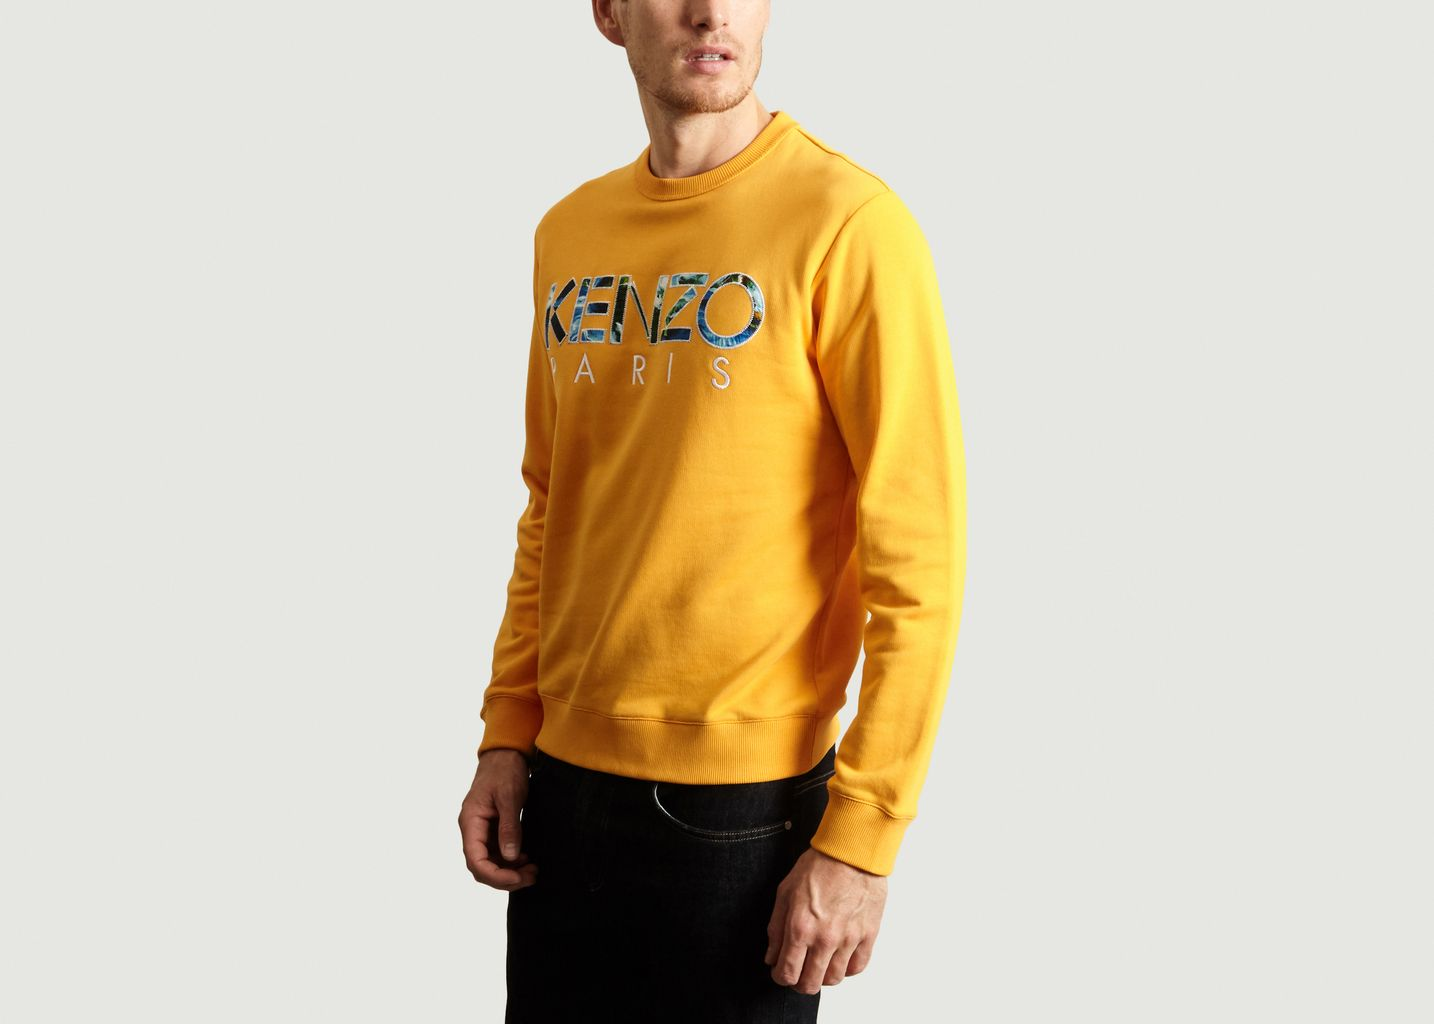 Sweatshirt World Sweatshirt Kenzo Kenzo World Kenzo World World Sweatshirt Kenzo Sweatshirt pMVzqSU